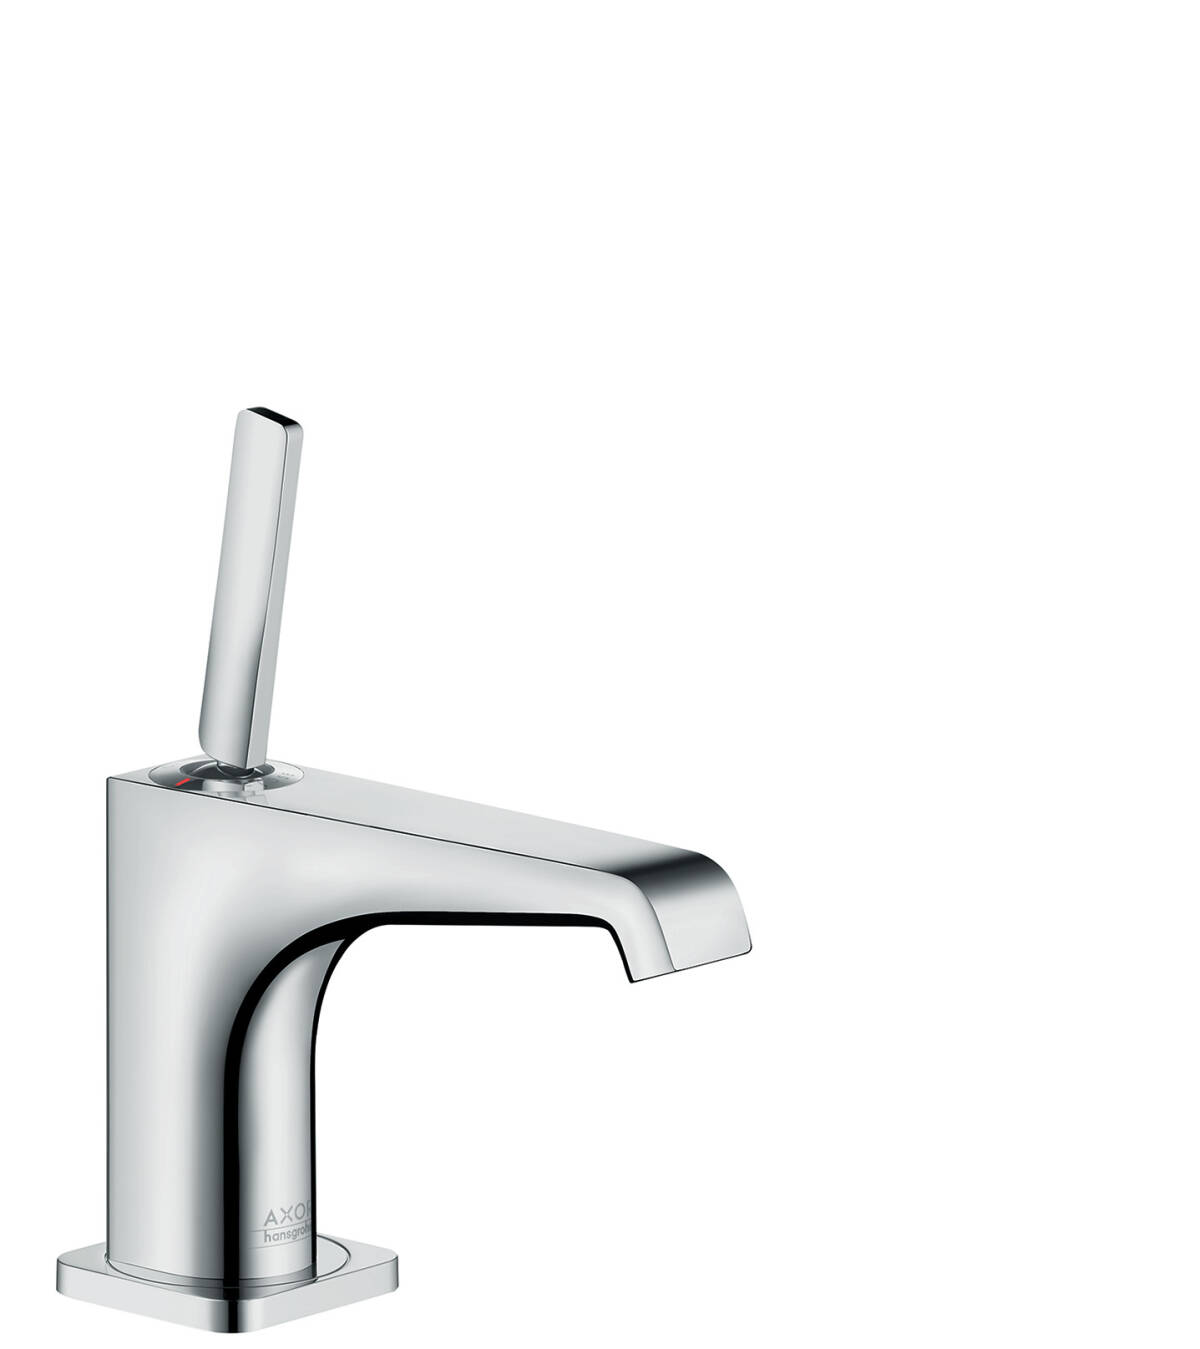 Single lever basin mixer 90 for hand washbasins with waste set, Brushed Brass, 36102950